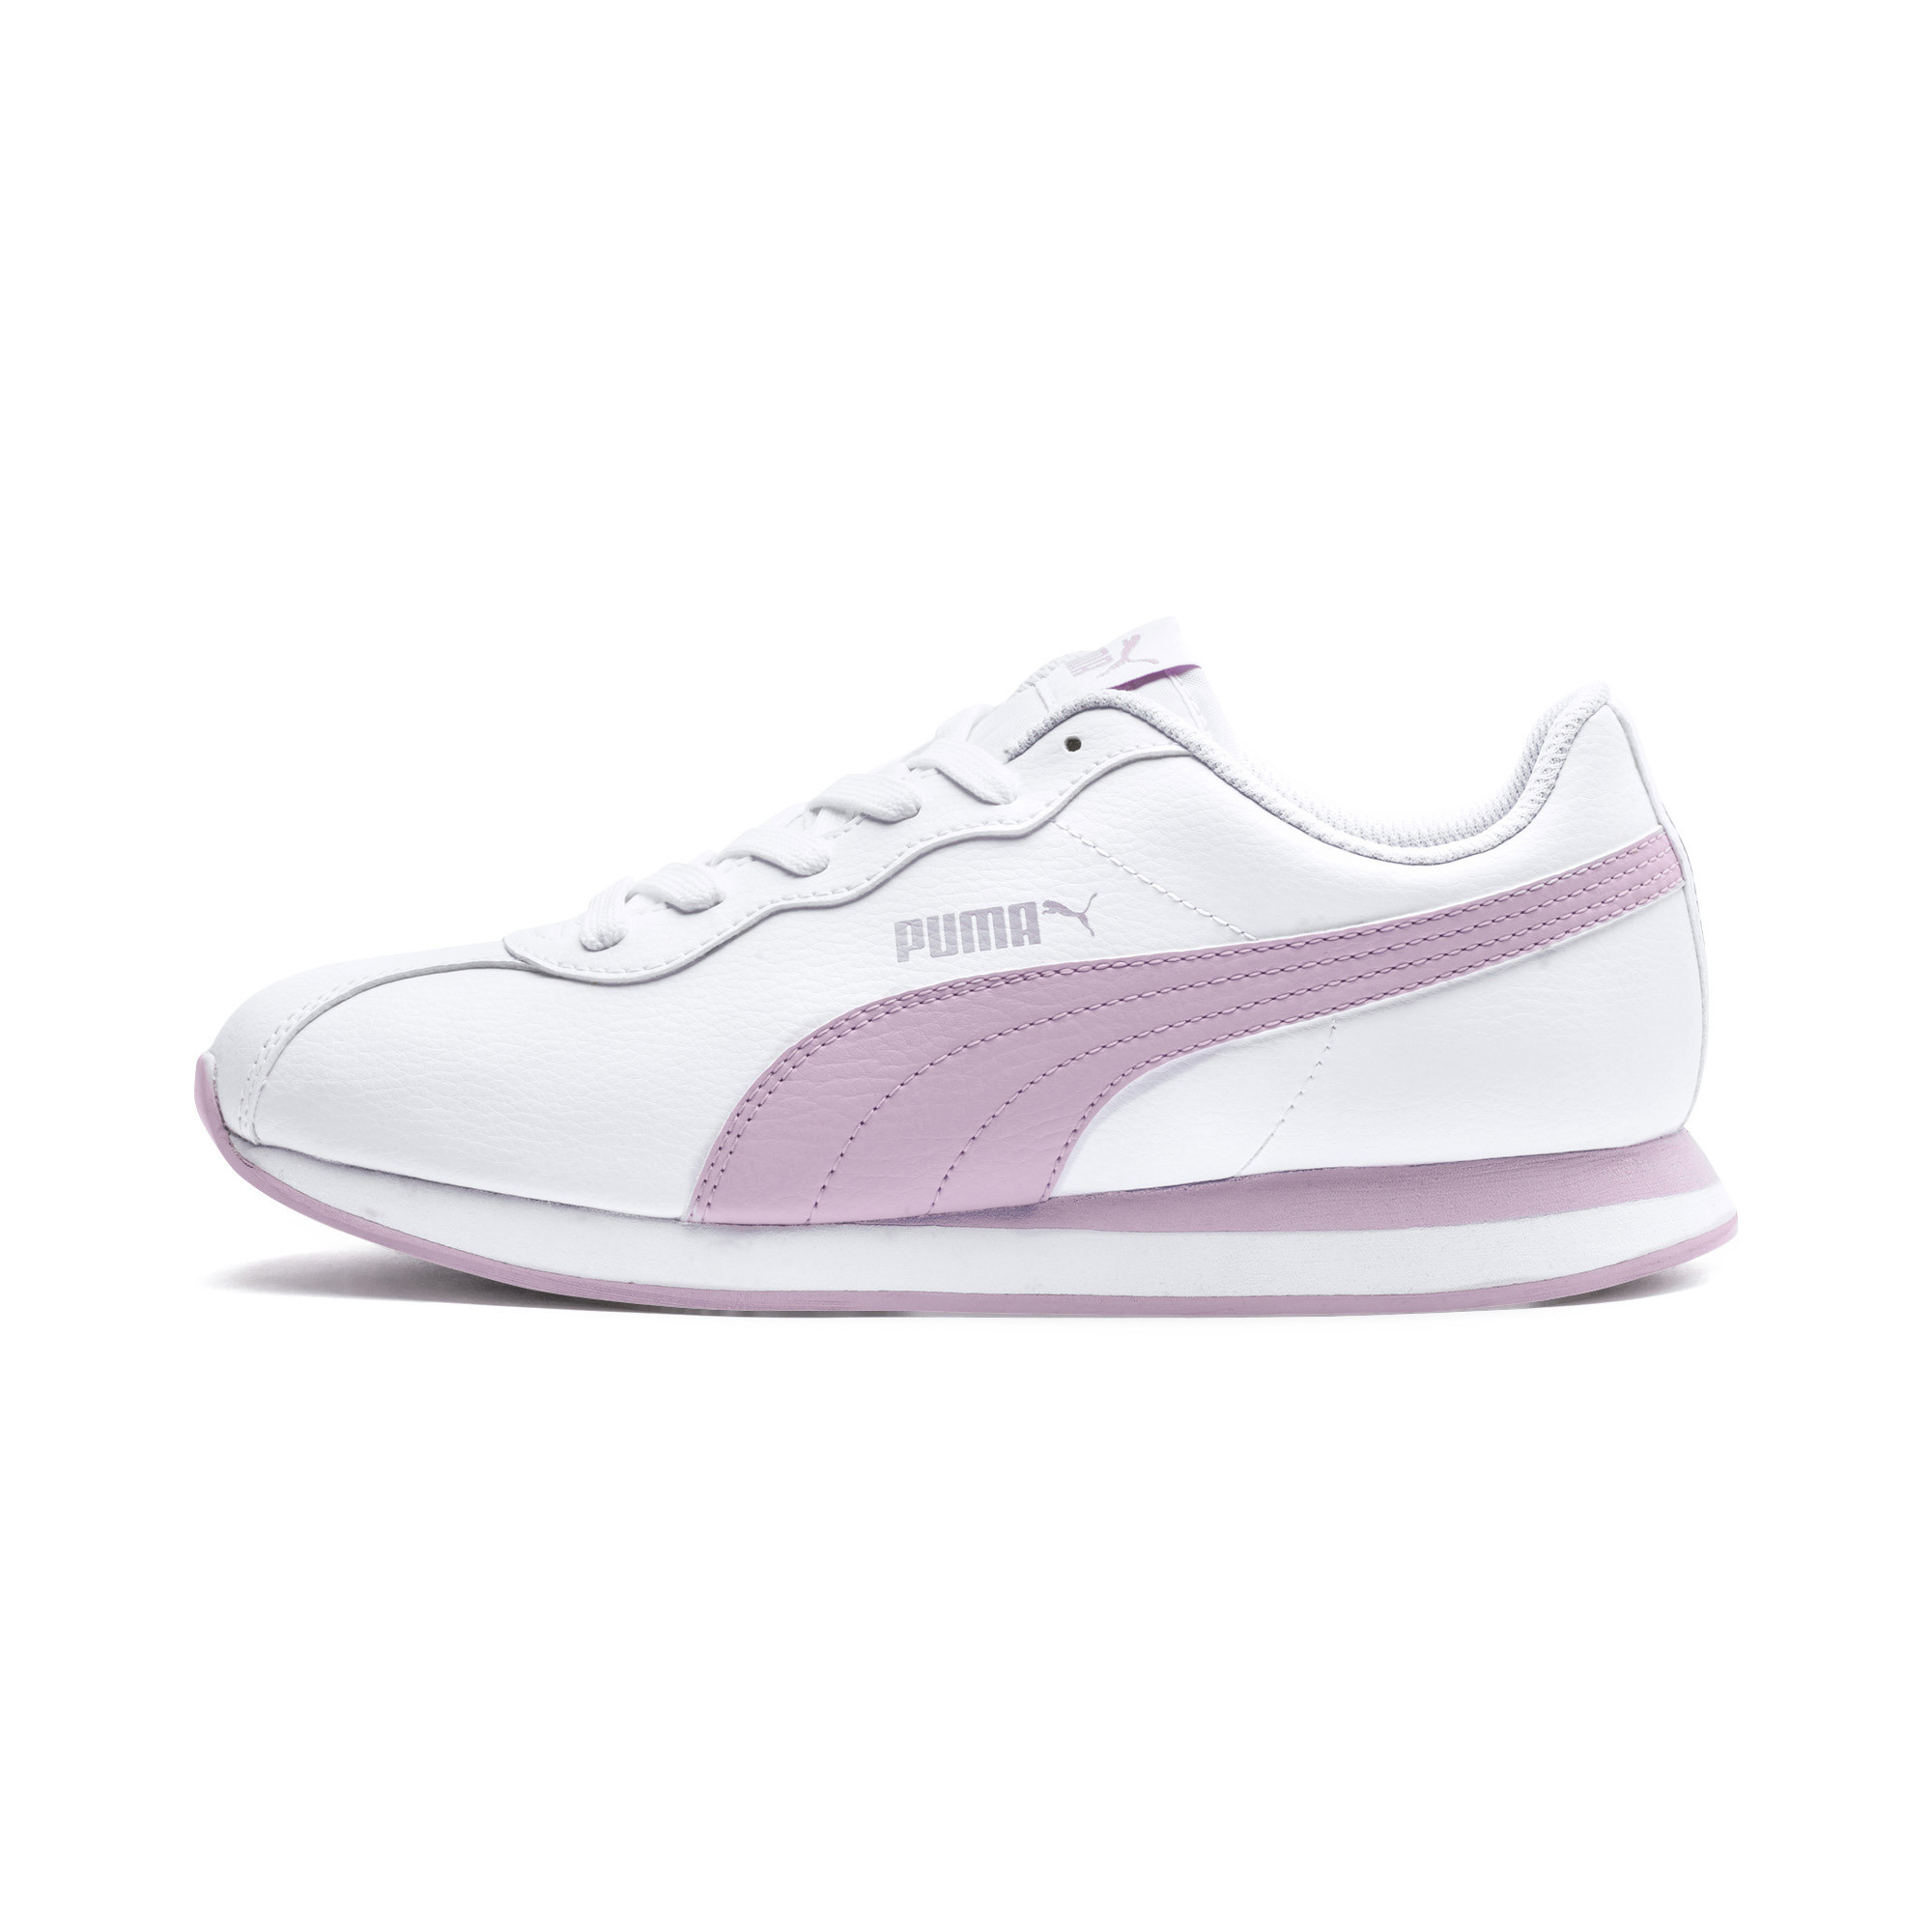 PUMA-Turin-II-Men-039-s-Sneakers-Men-Shoe-Basics thumbnail 19